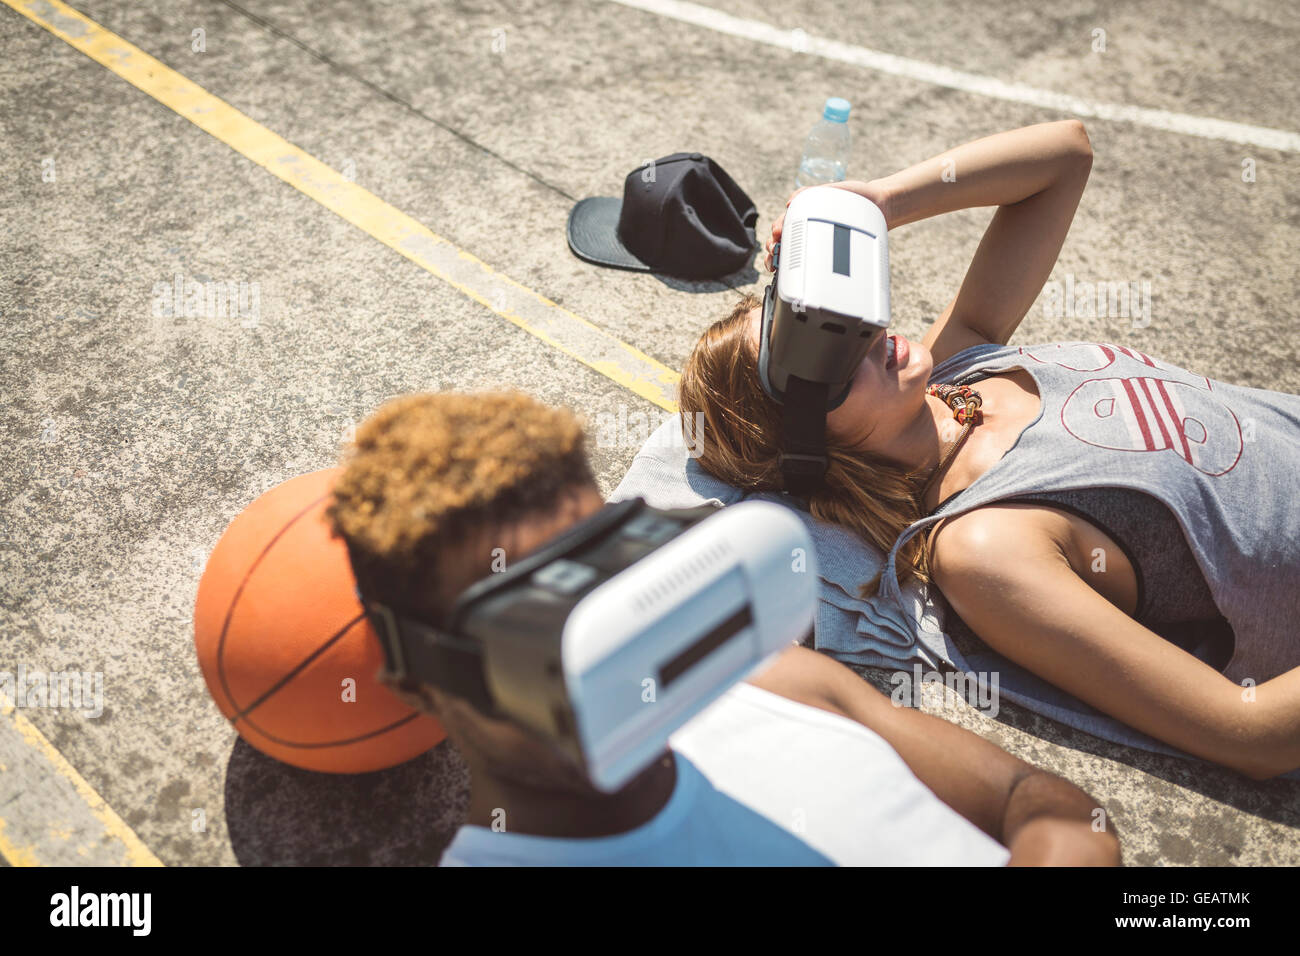 Junges Paar mit virtual-Reality-Brille, Köpfe auf Basketball ruht Stockfoto